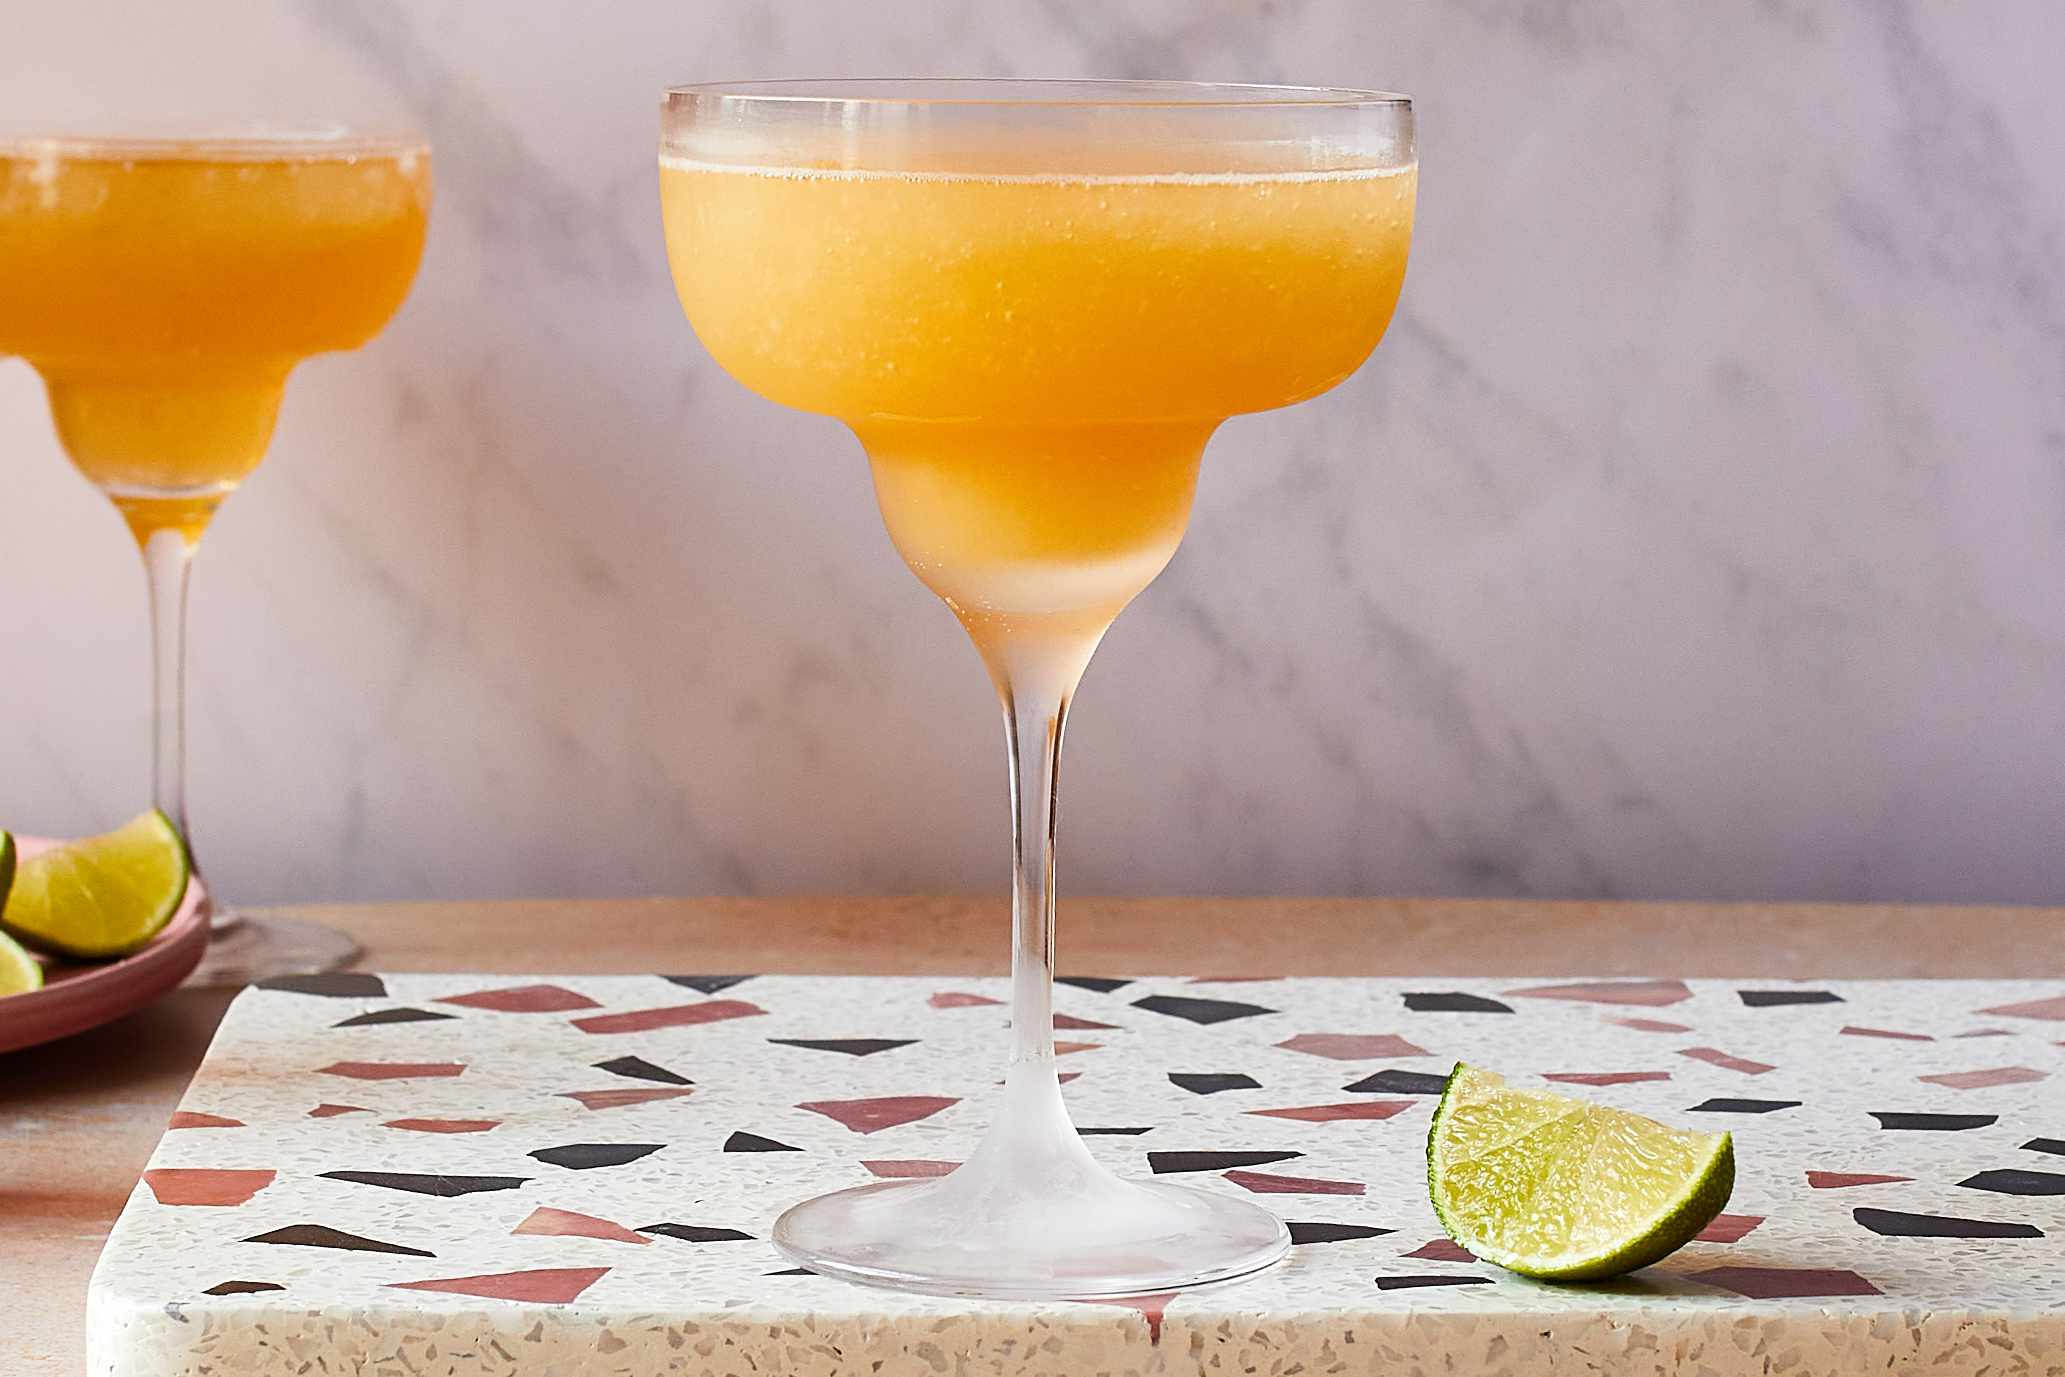 Pour into a chilled coupe, margarita glass